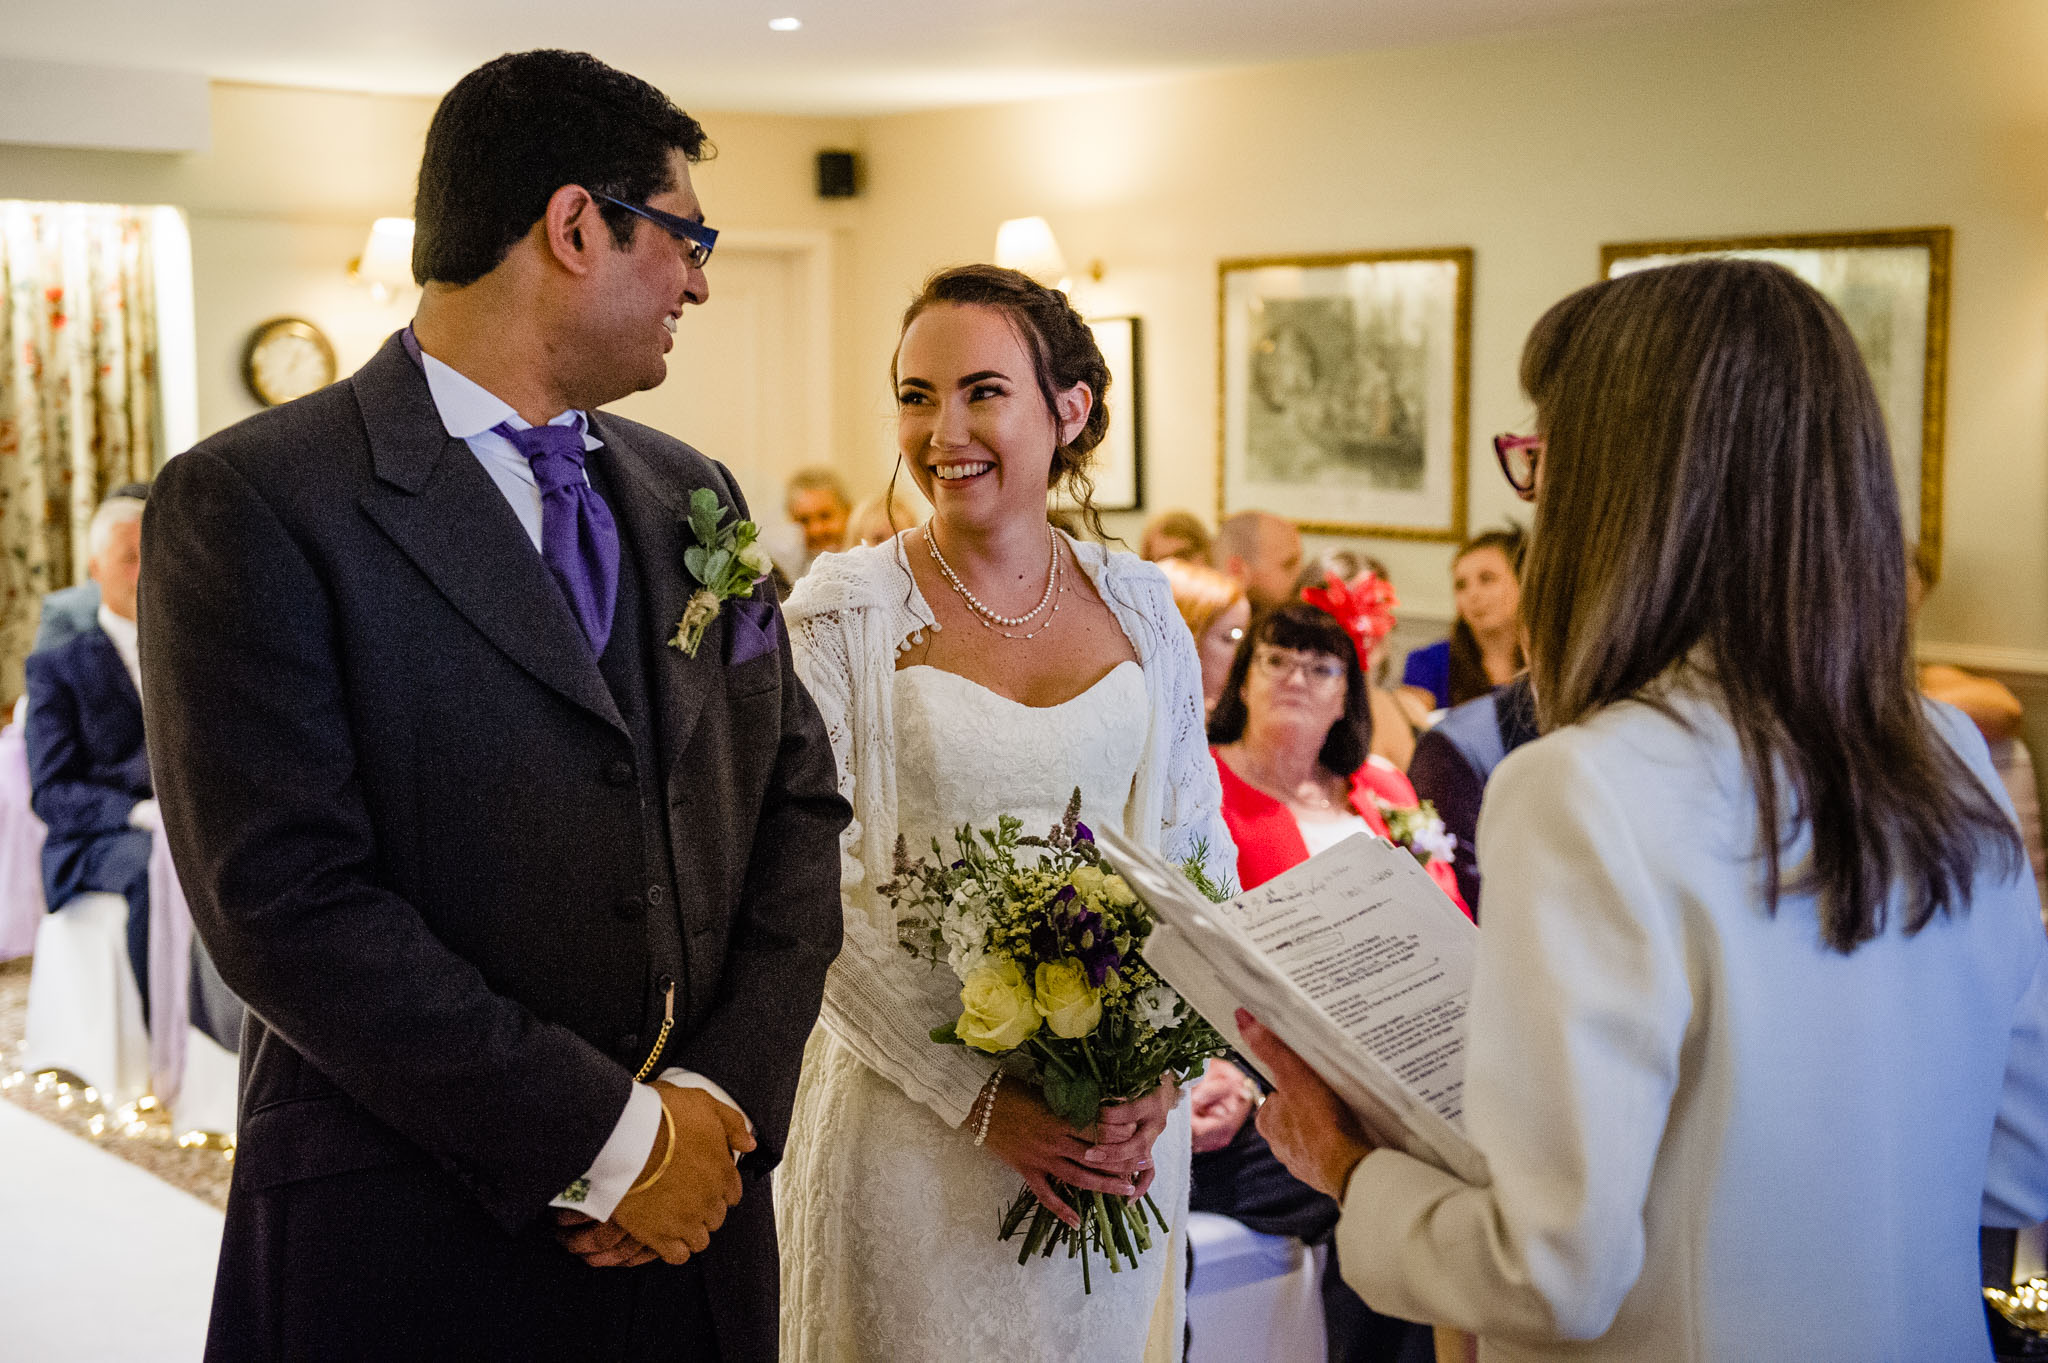 Sharing a glance during the ceremony